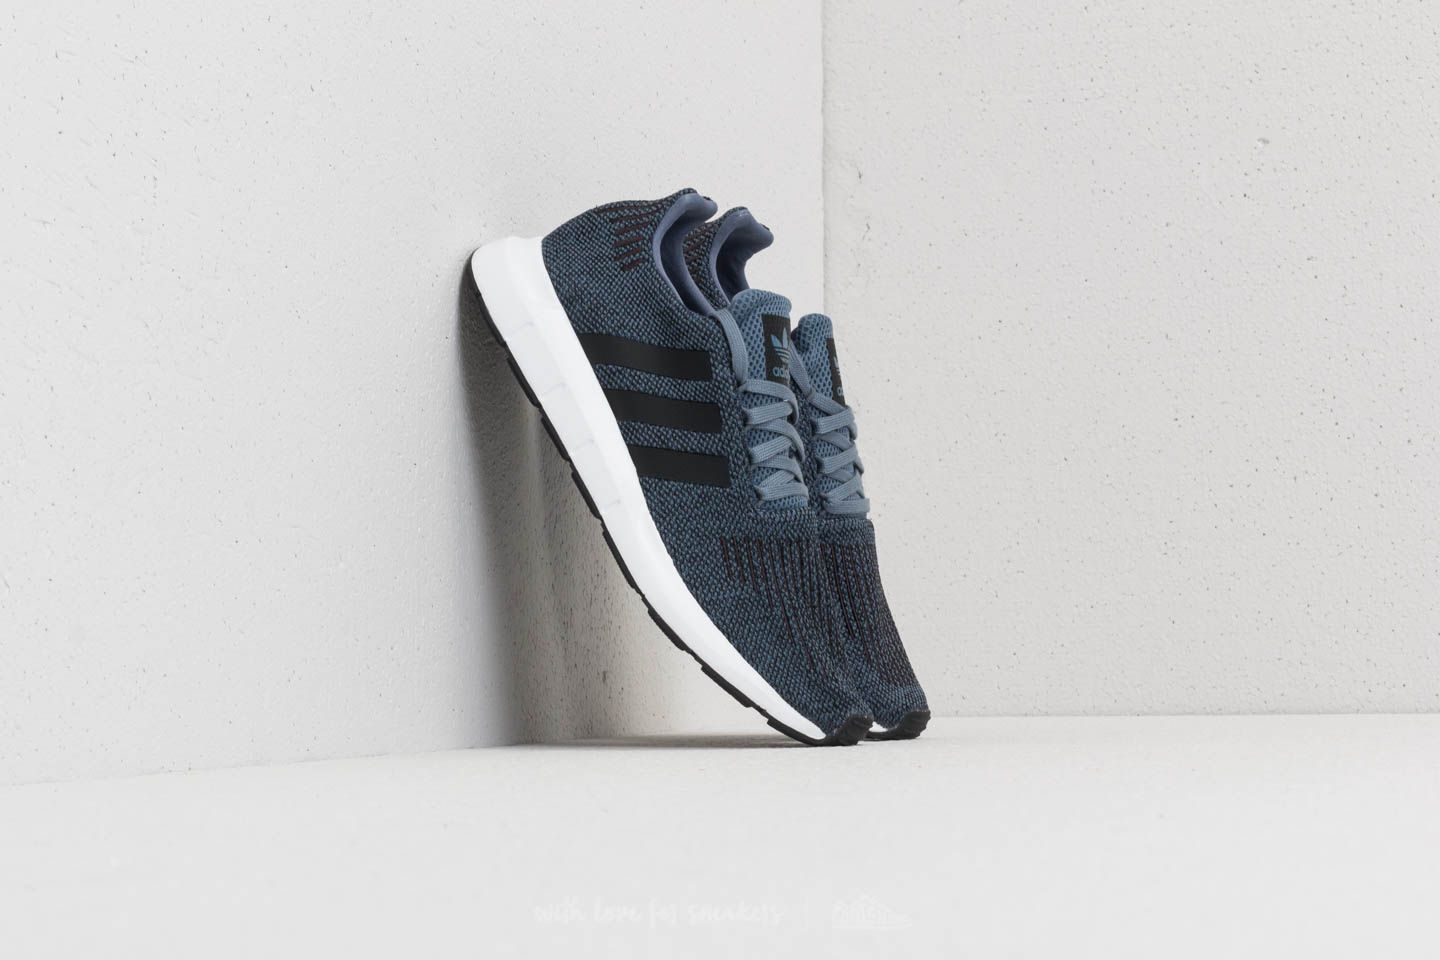 adidas Swift Run Raw Steel/ Core Black/ Ftw White